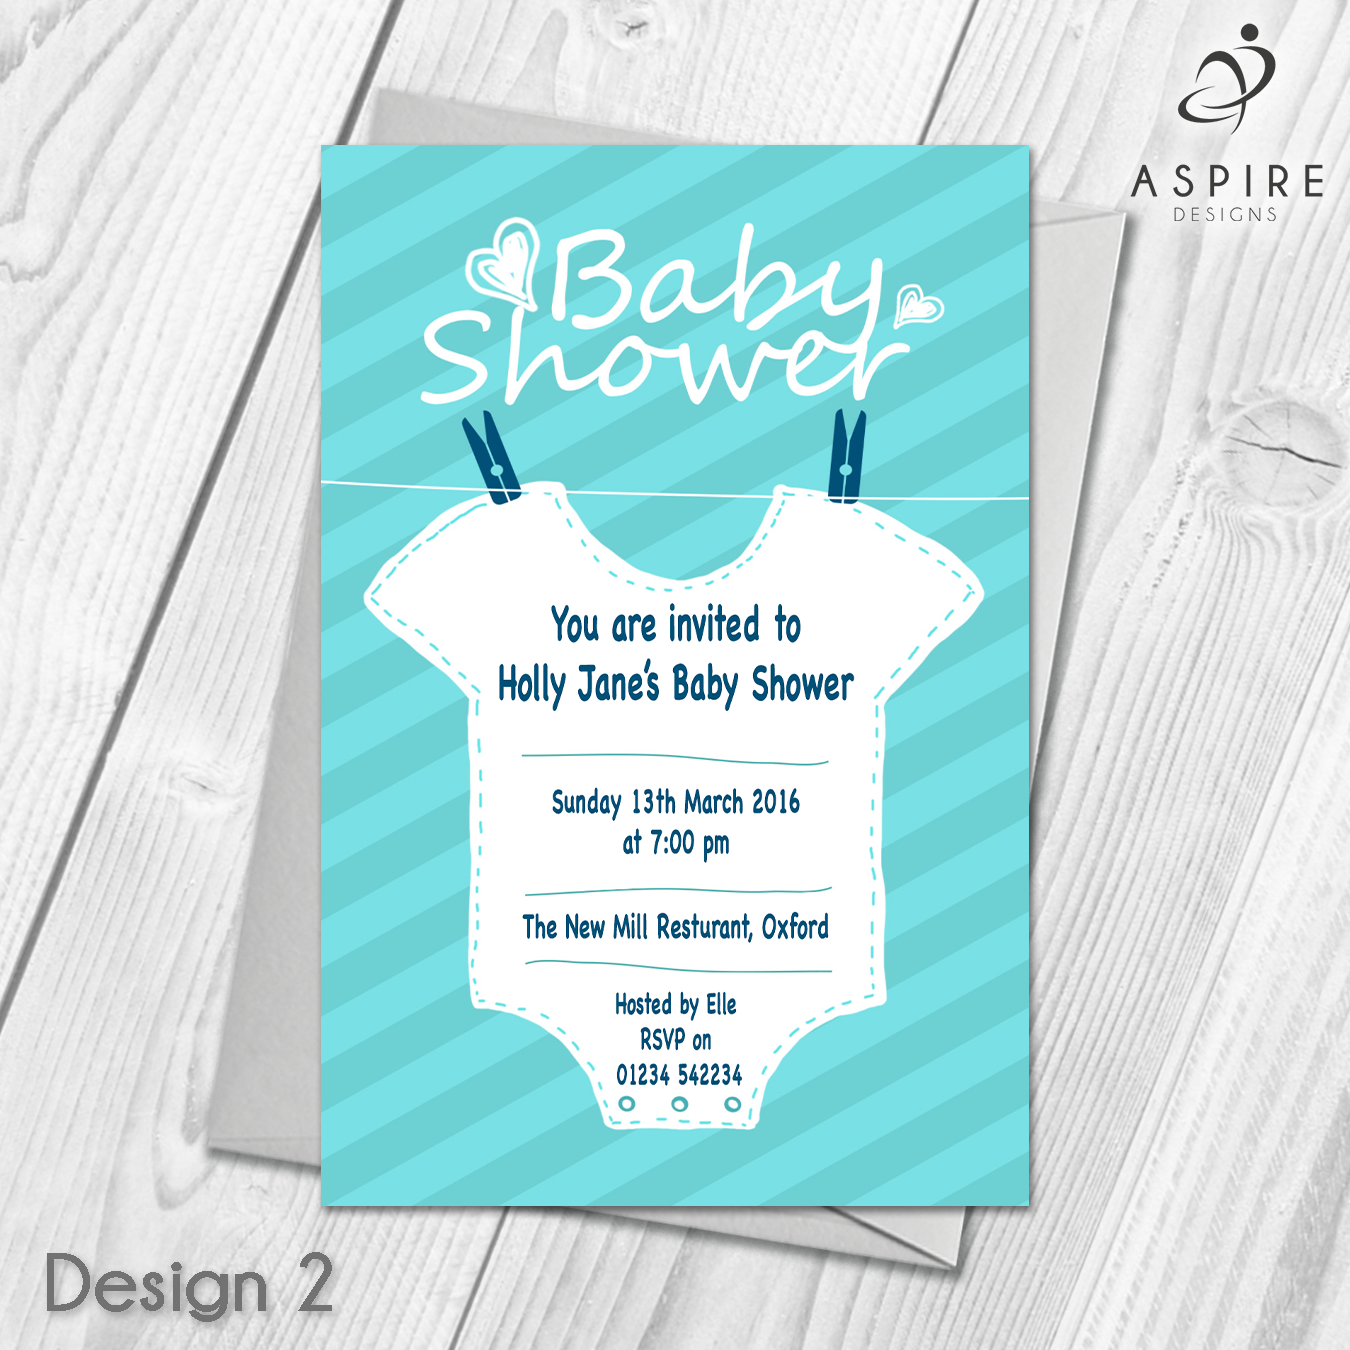 Personalised Baby Shower Invitations Invites / Cards & Envelopes ...